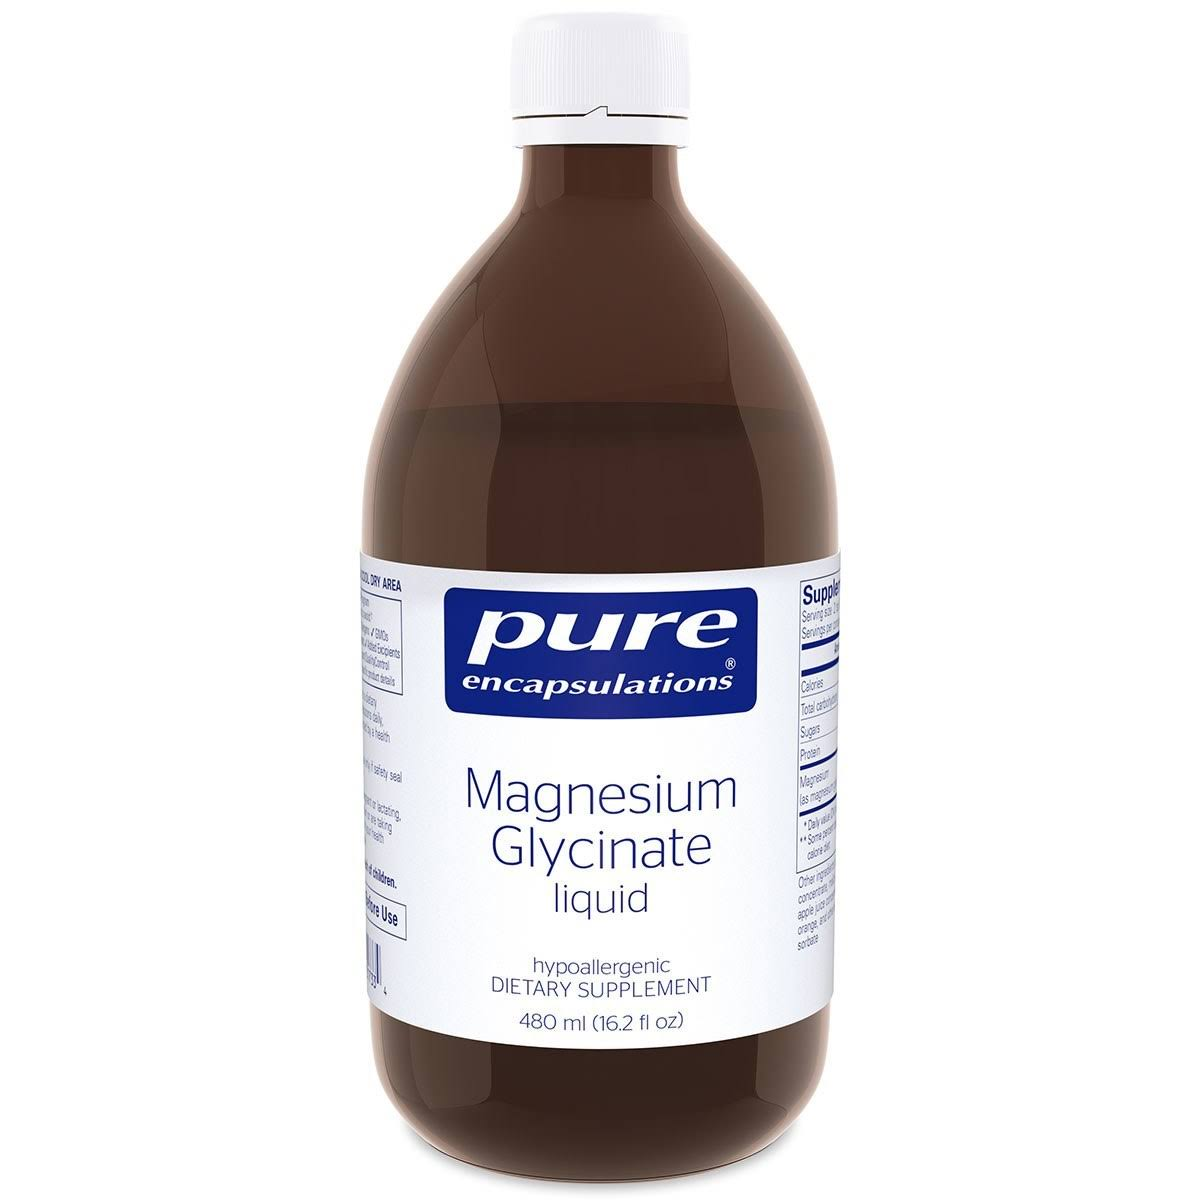 Pure Encapsulations Magnesium Glycinate Liquid Dietary Supplement - 16.2oz